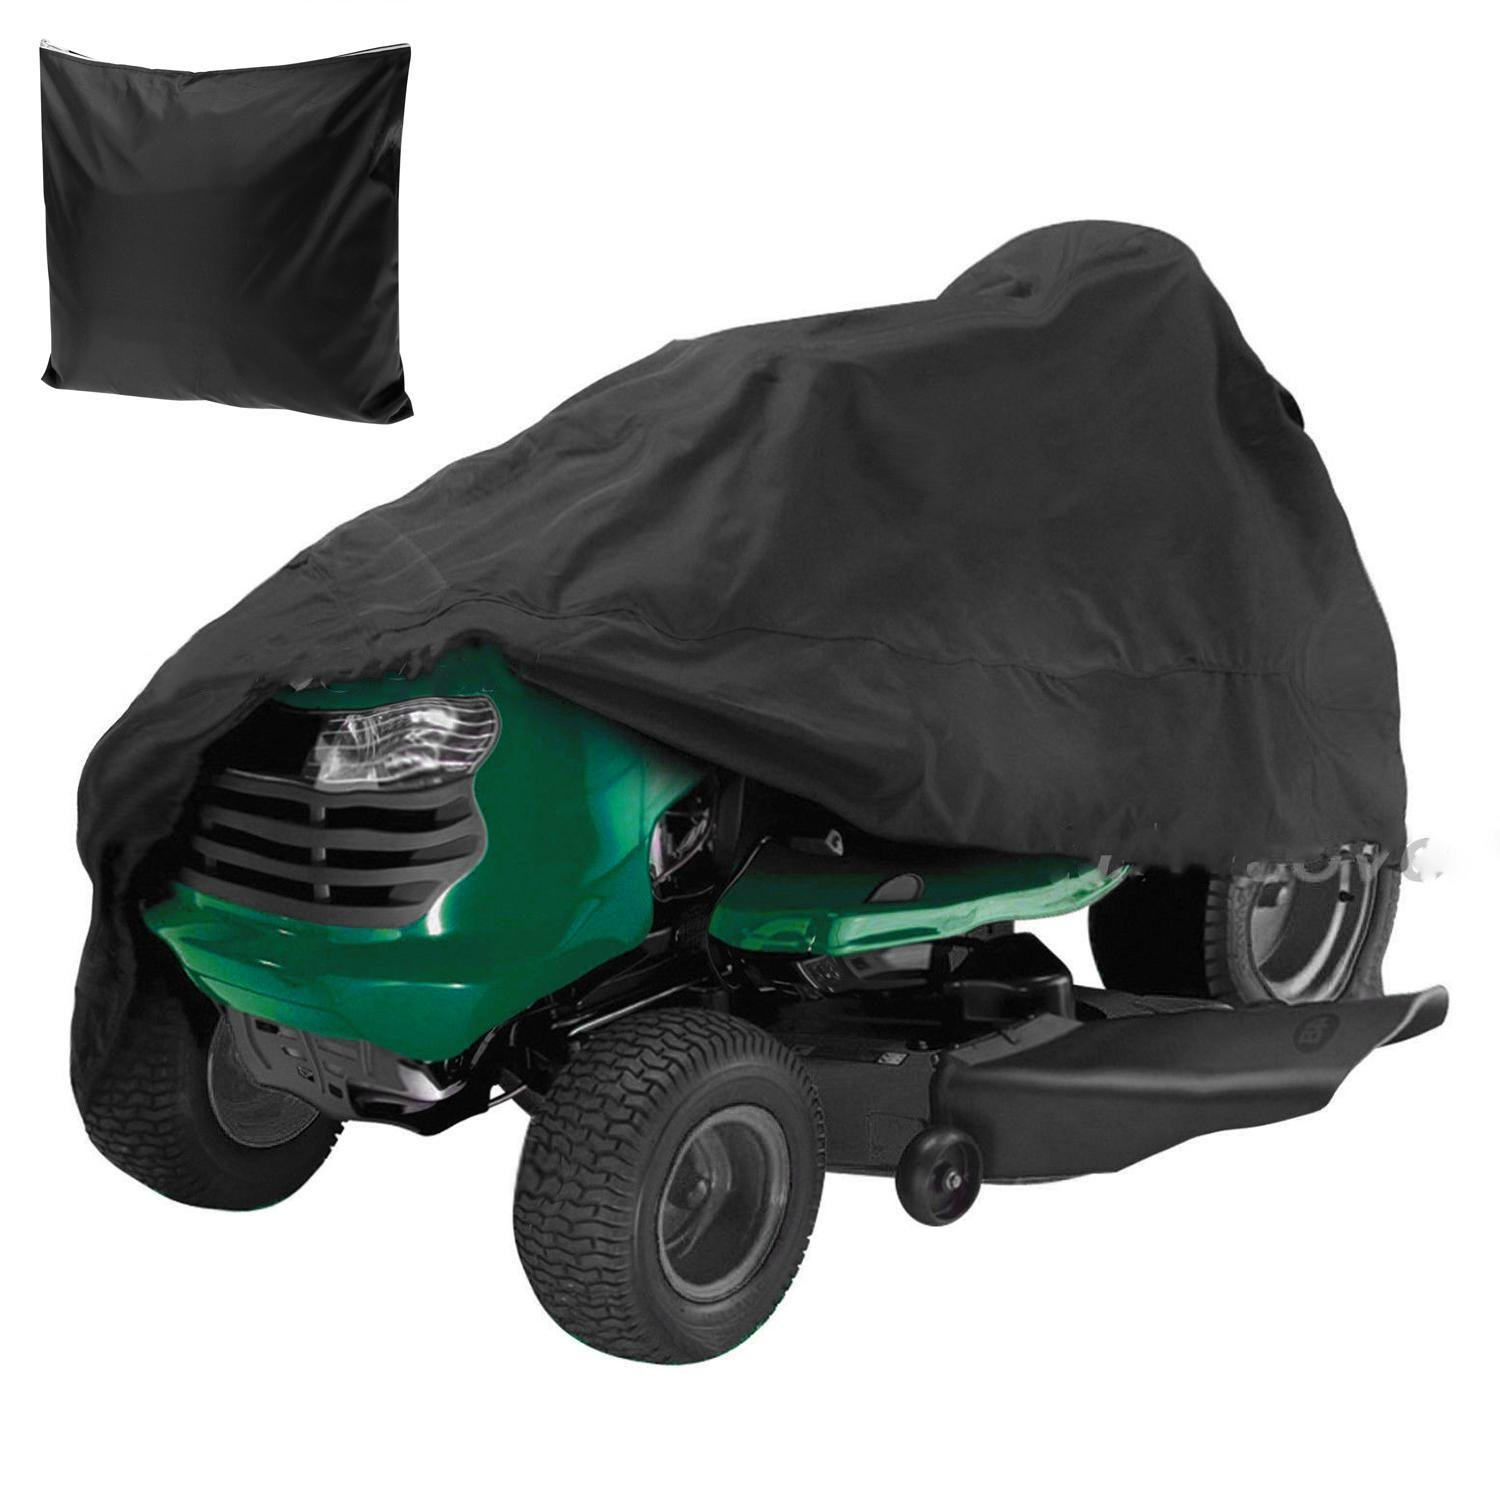 54 Inch Waterproof Garden Yard Riding Lawn Mower Cover, UV and Water Resistant Tractor Cover Black